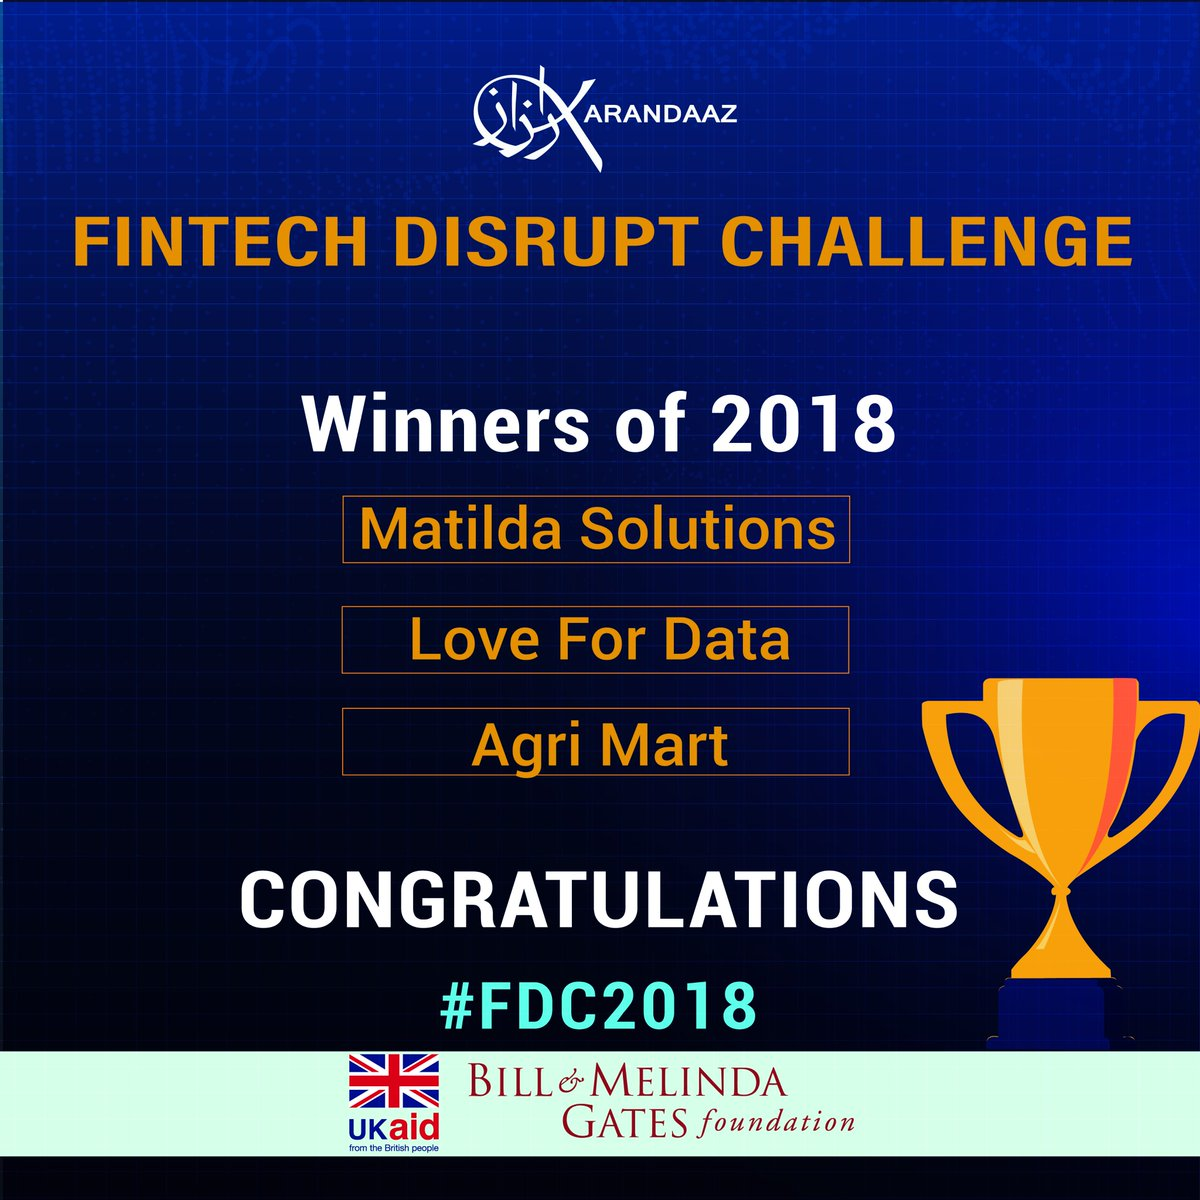 test Twitter Media - Karandaaz is proud of the impressive #FDC2018 finalists. They are examples of the entrepreneurial spirit that will propel country's competitiveness in the services markets. Congratulations to the 3 winners, we look forward to working closely to deliver innovative #DFS in Pakistan https://t.co/a1mTbC0i4q